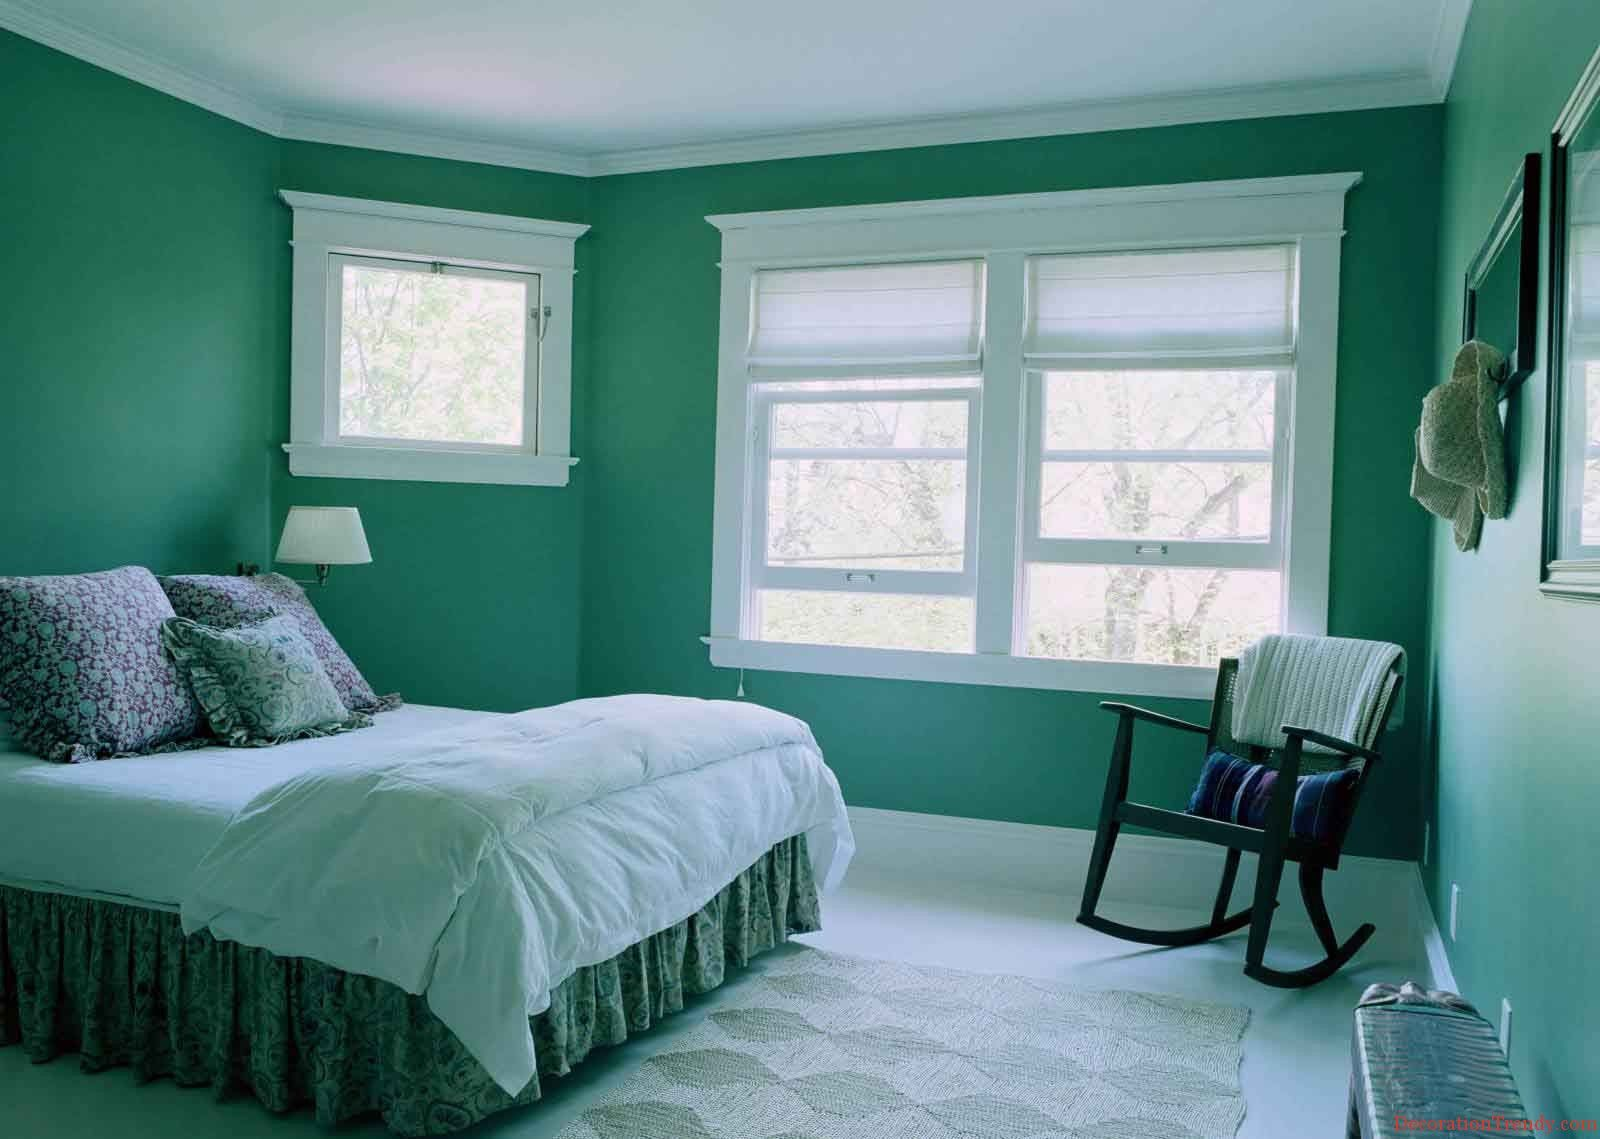 Light green bedroom paint colors - Wall Color Combination Design Ideas And Photos Get Creative Wall Painting Ideas Designs For Green Brown Bedroomslight